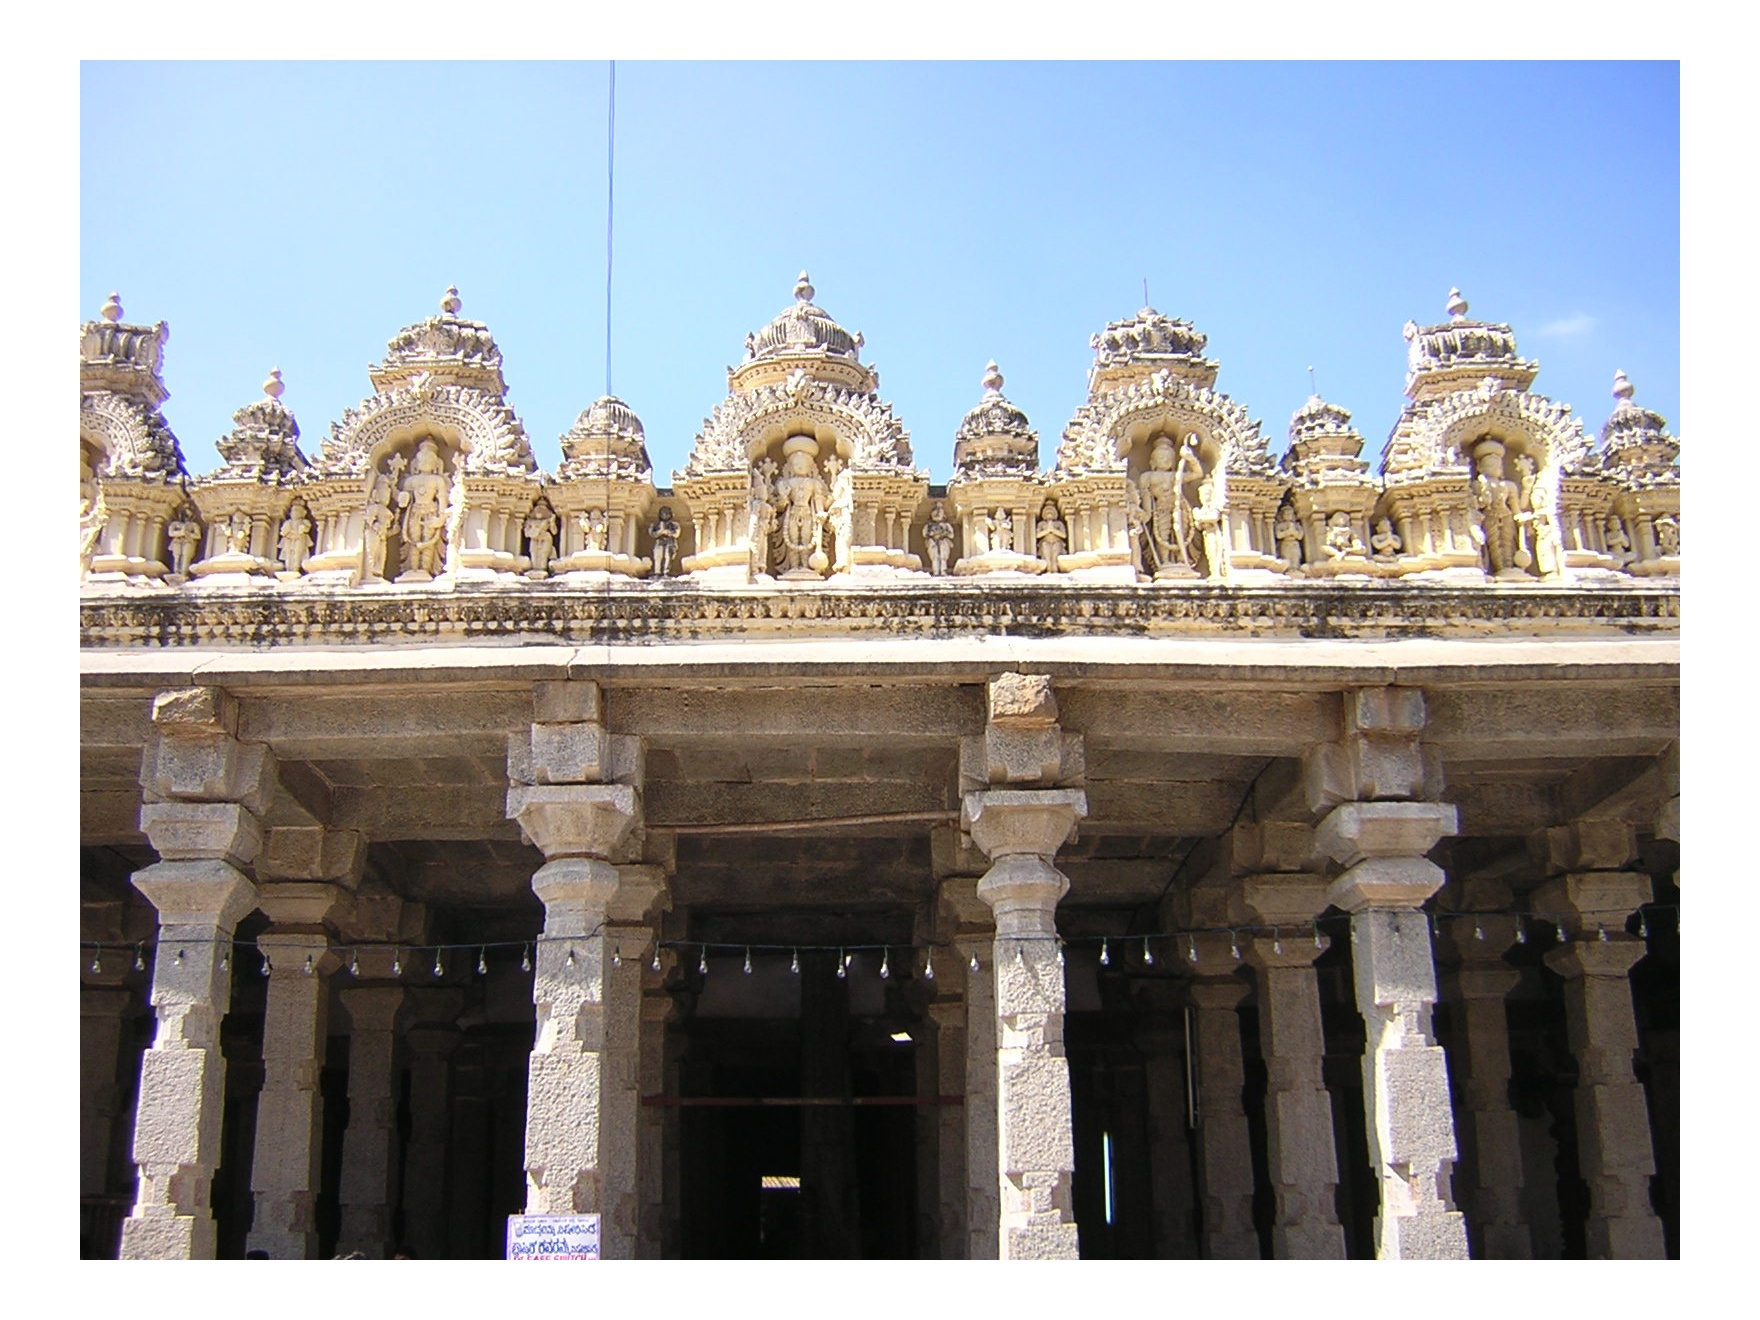 Front view - just before entering the temple